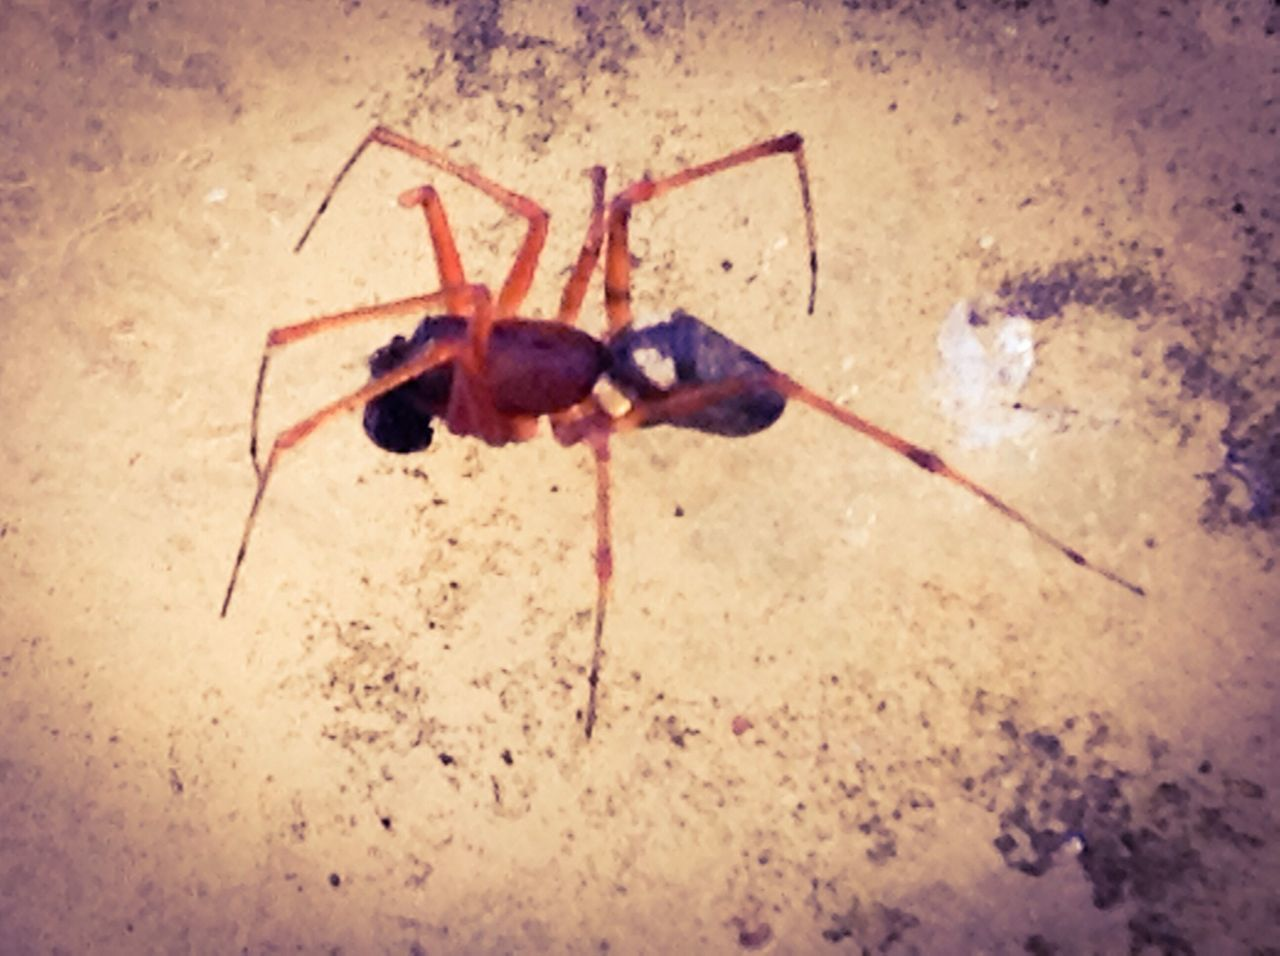 Steatoda false Black Widow Spider Spiders